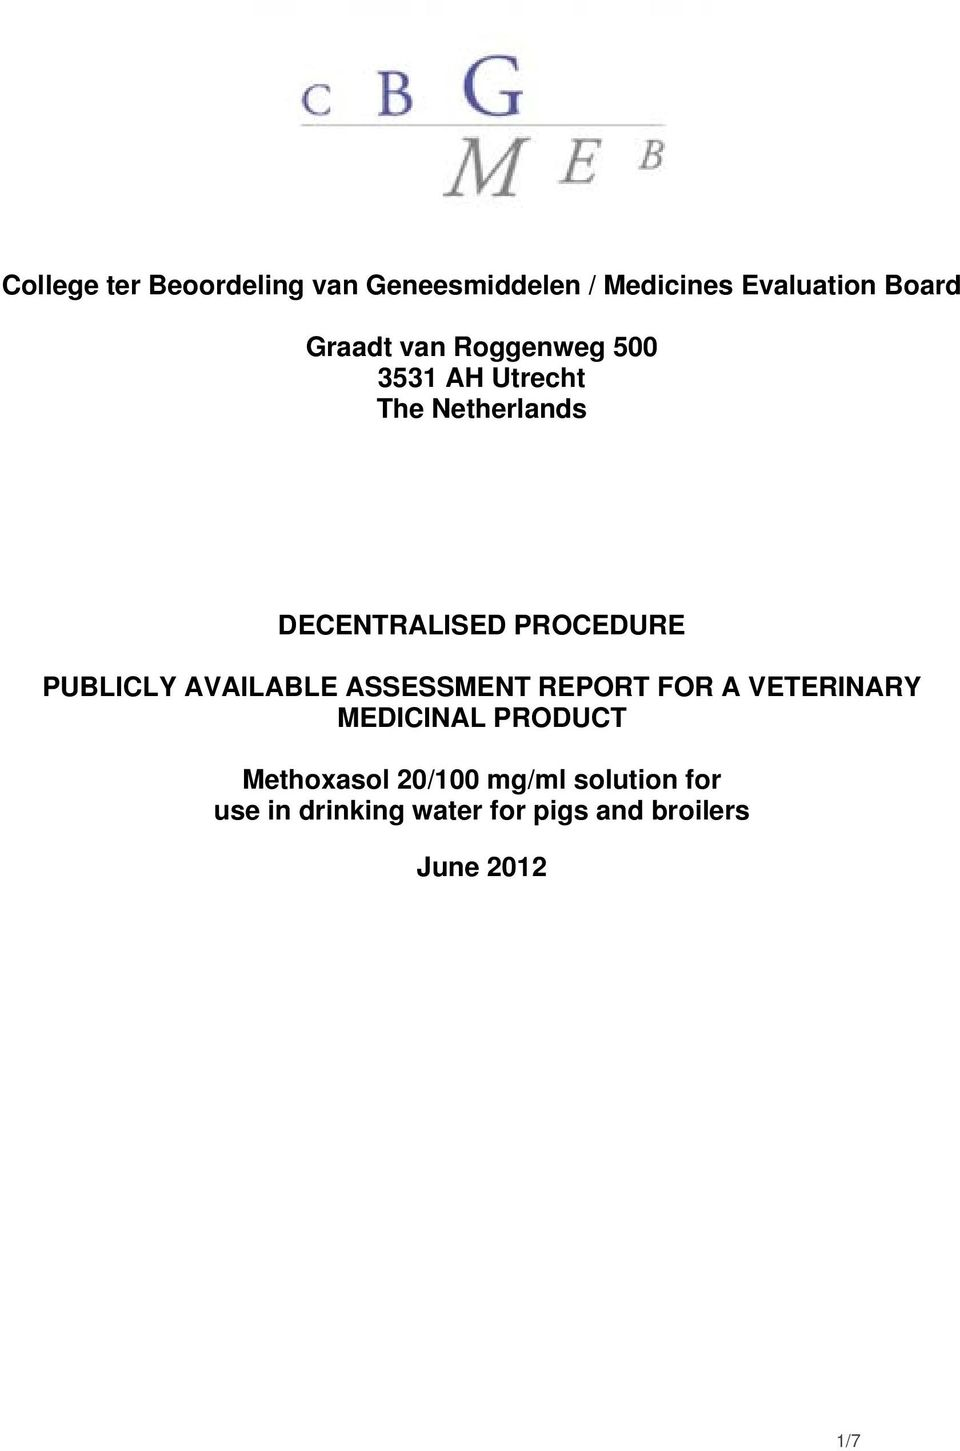 DECENTRALISED PROCEDURE PUBLICLY AVAILABLE ASSESSMENT REPORT FOR A